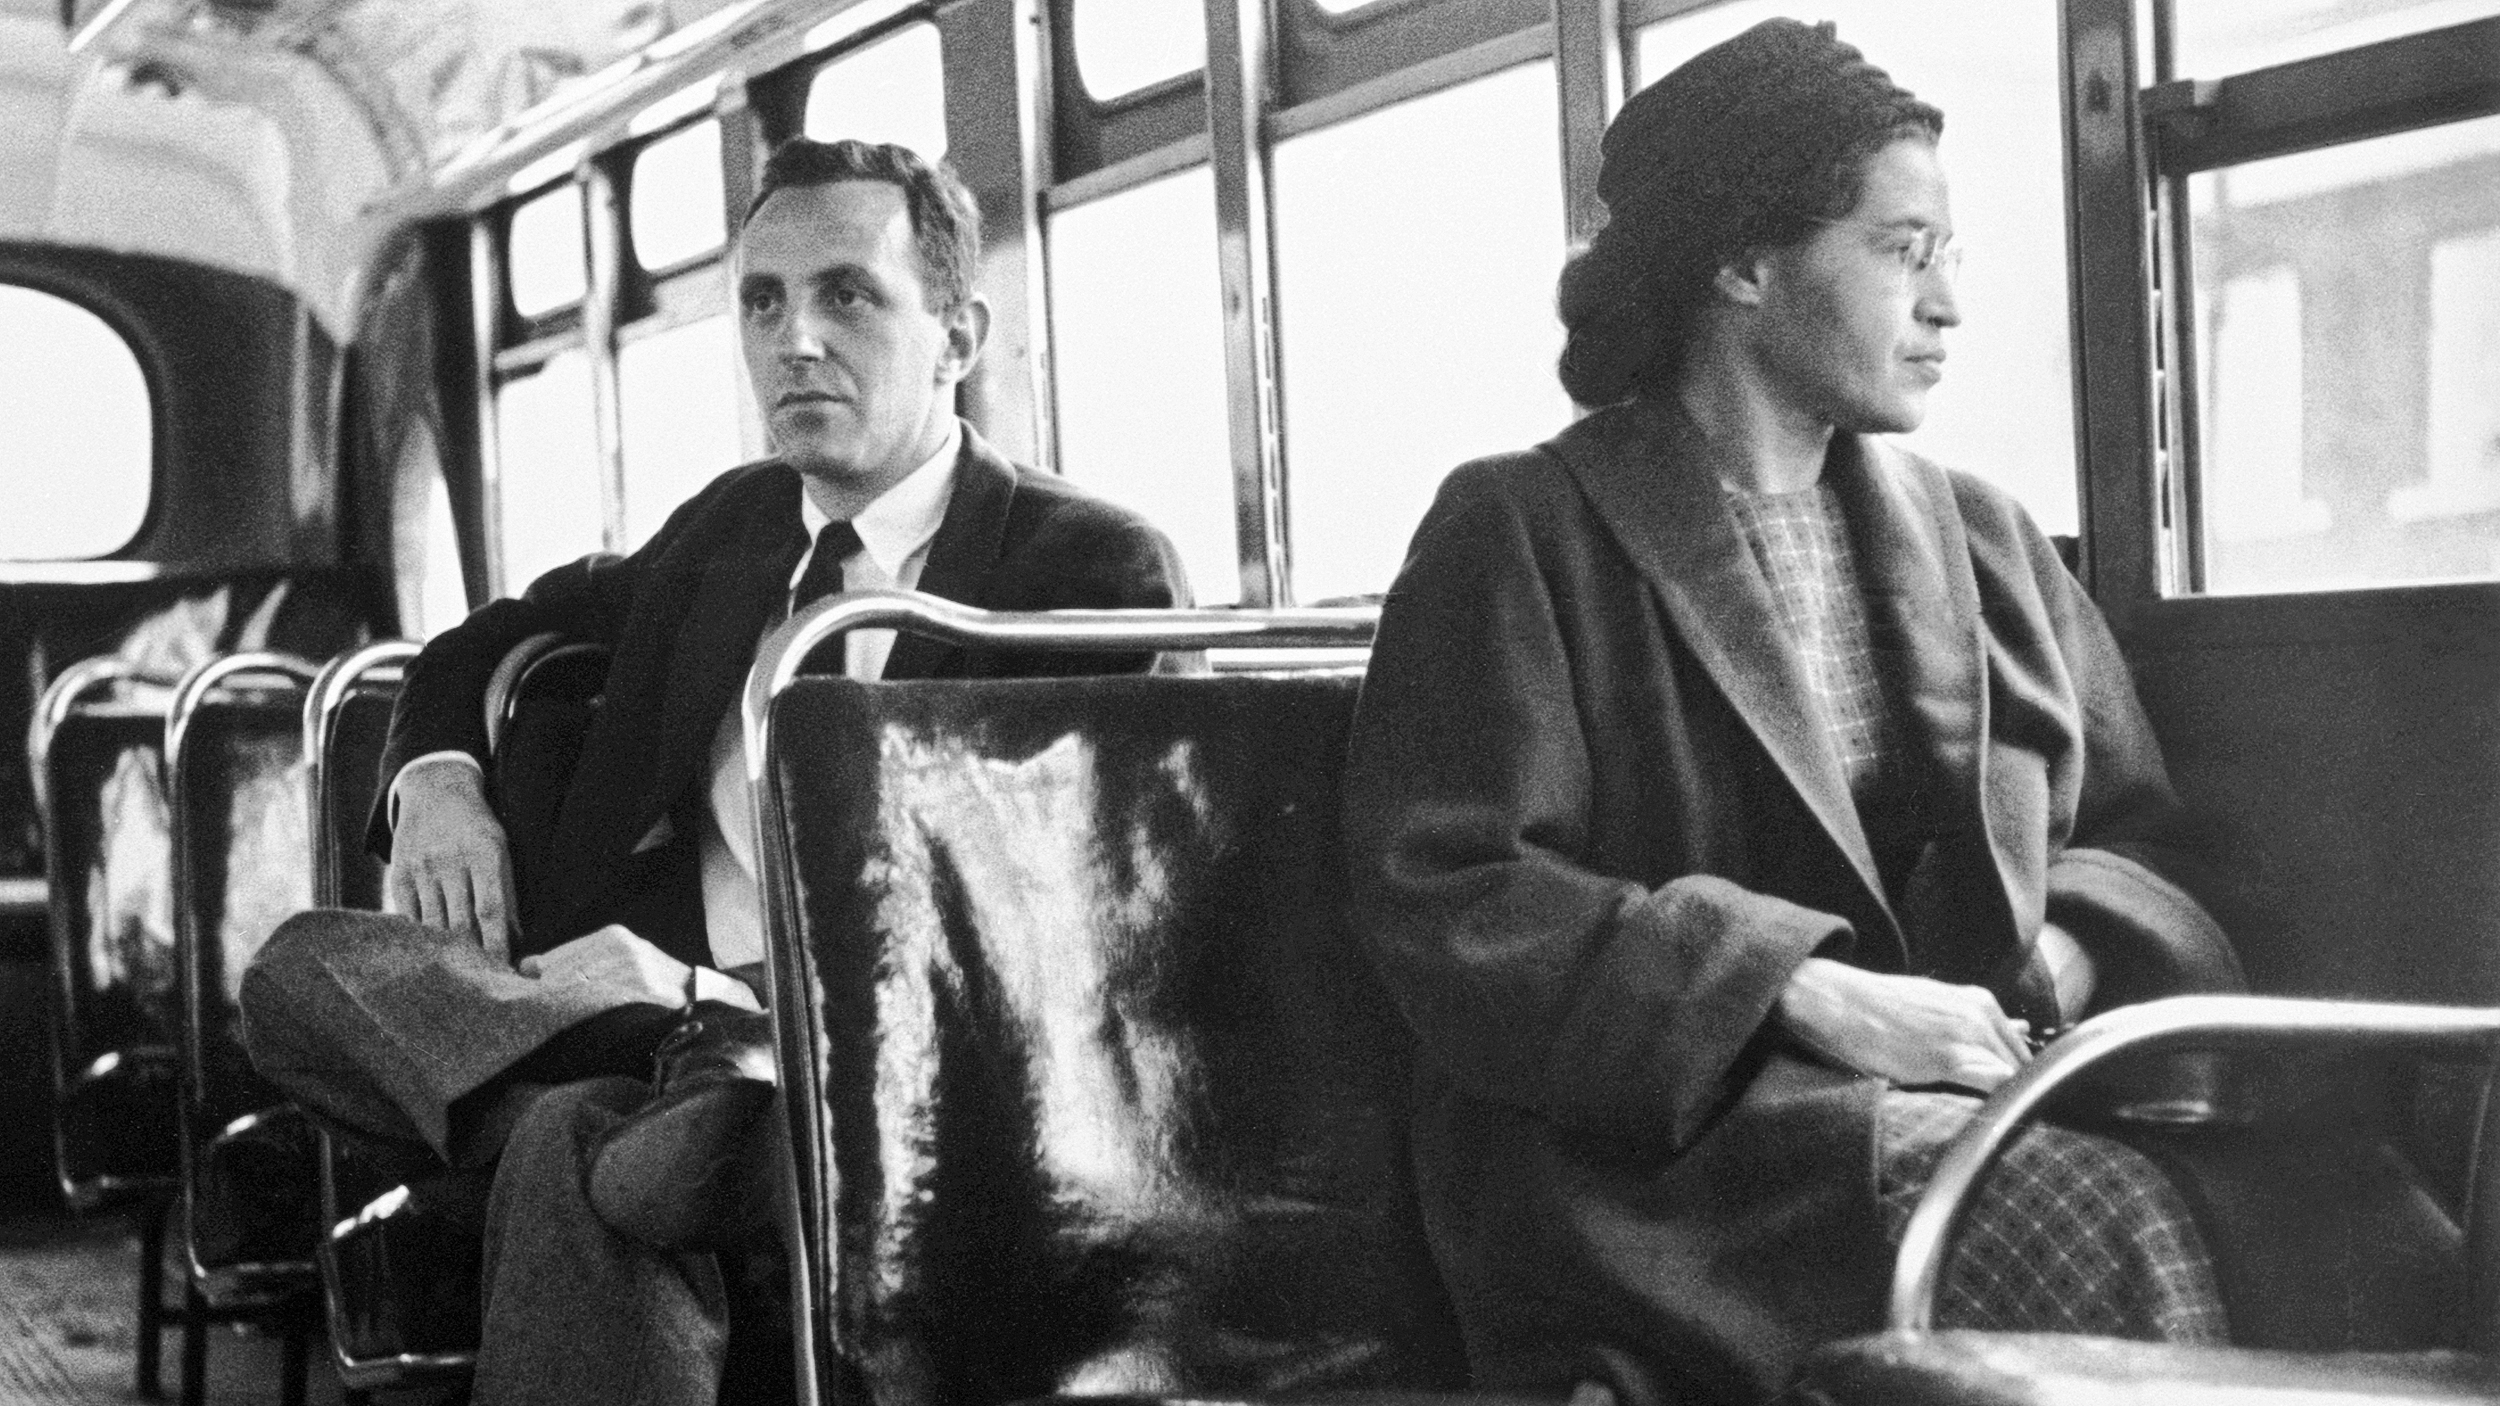 On this day: Rosa Parks refused to give up her bus seat, igniting the civil rights movement